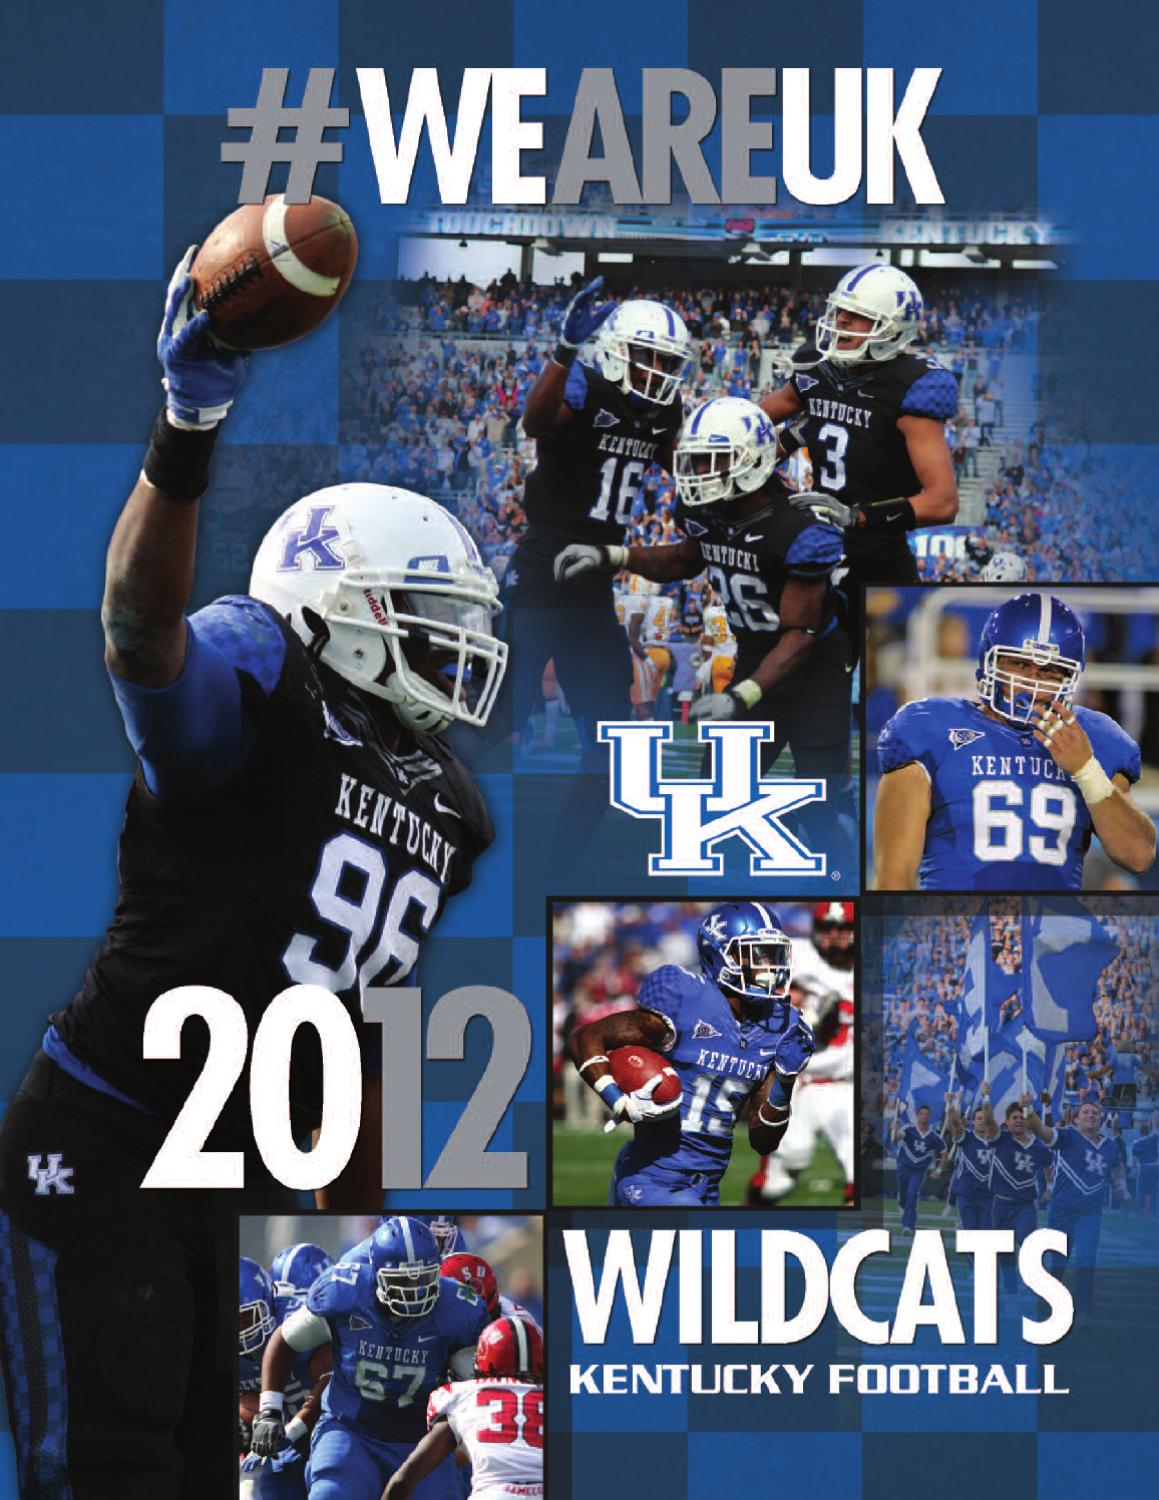 af9fc3c41 2012 University of Kentucky Football Media Guide by University of Kentucky  Athletics - issuu